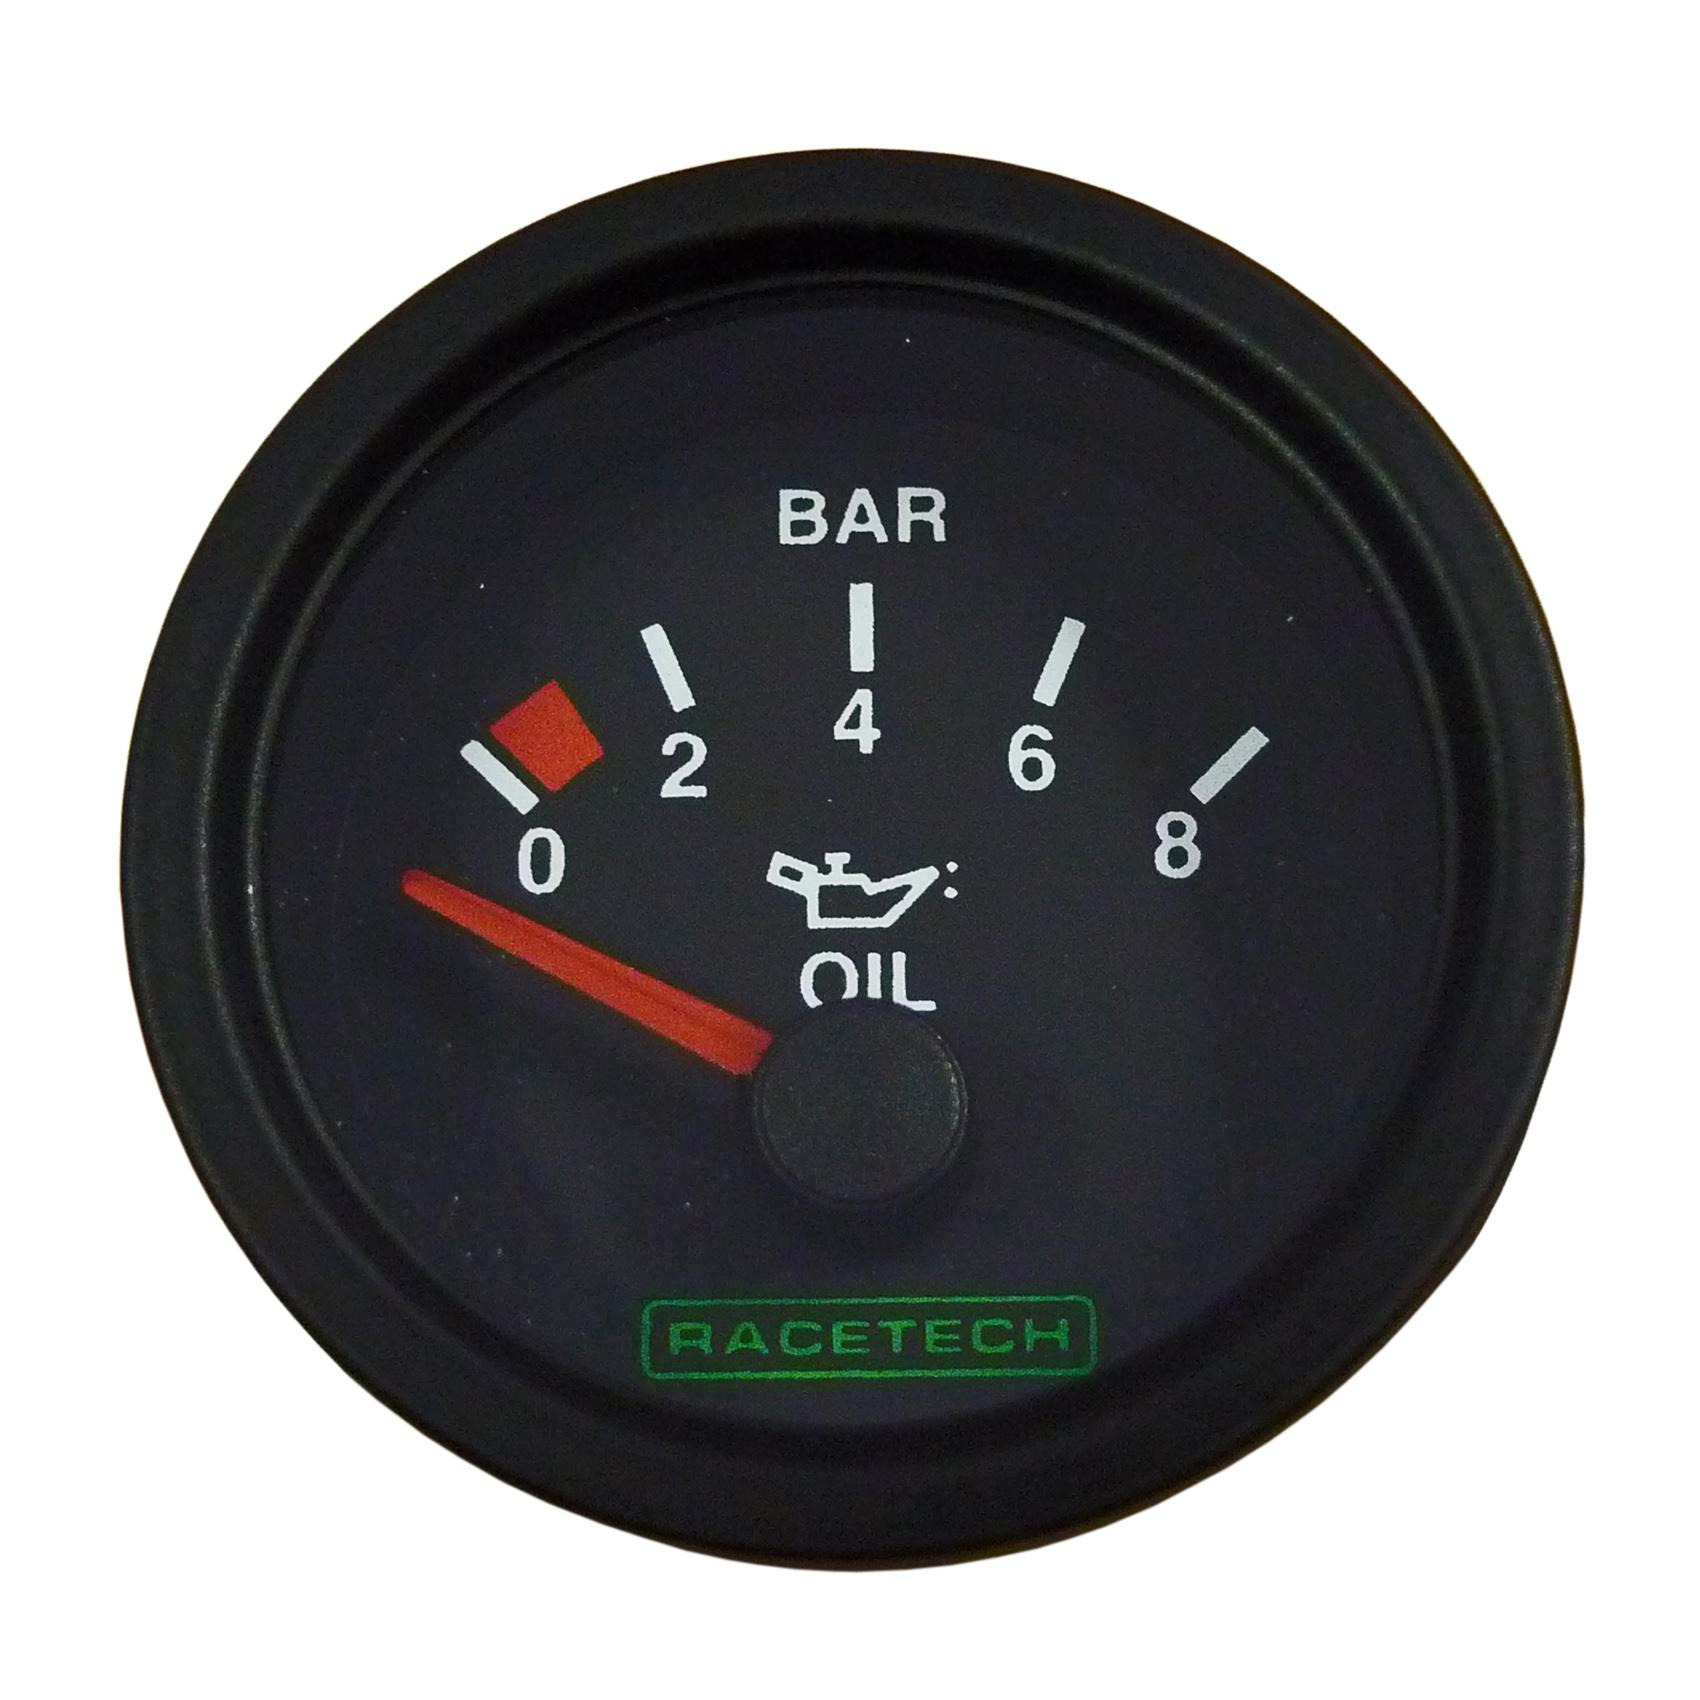 Racetech Electric 8 Bar Oil Pressure Gauge Rtecop8 as well 366435 as well Product product id 565 as well Engine Problem See Spark Plug Condition besides AC Car Conversion Br EV Electrical Wiring DiagramsSchematics Br And Other Useful Diagrams p 679. on electric motor plugs